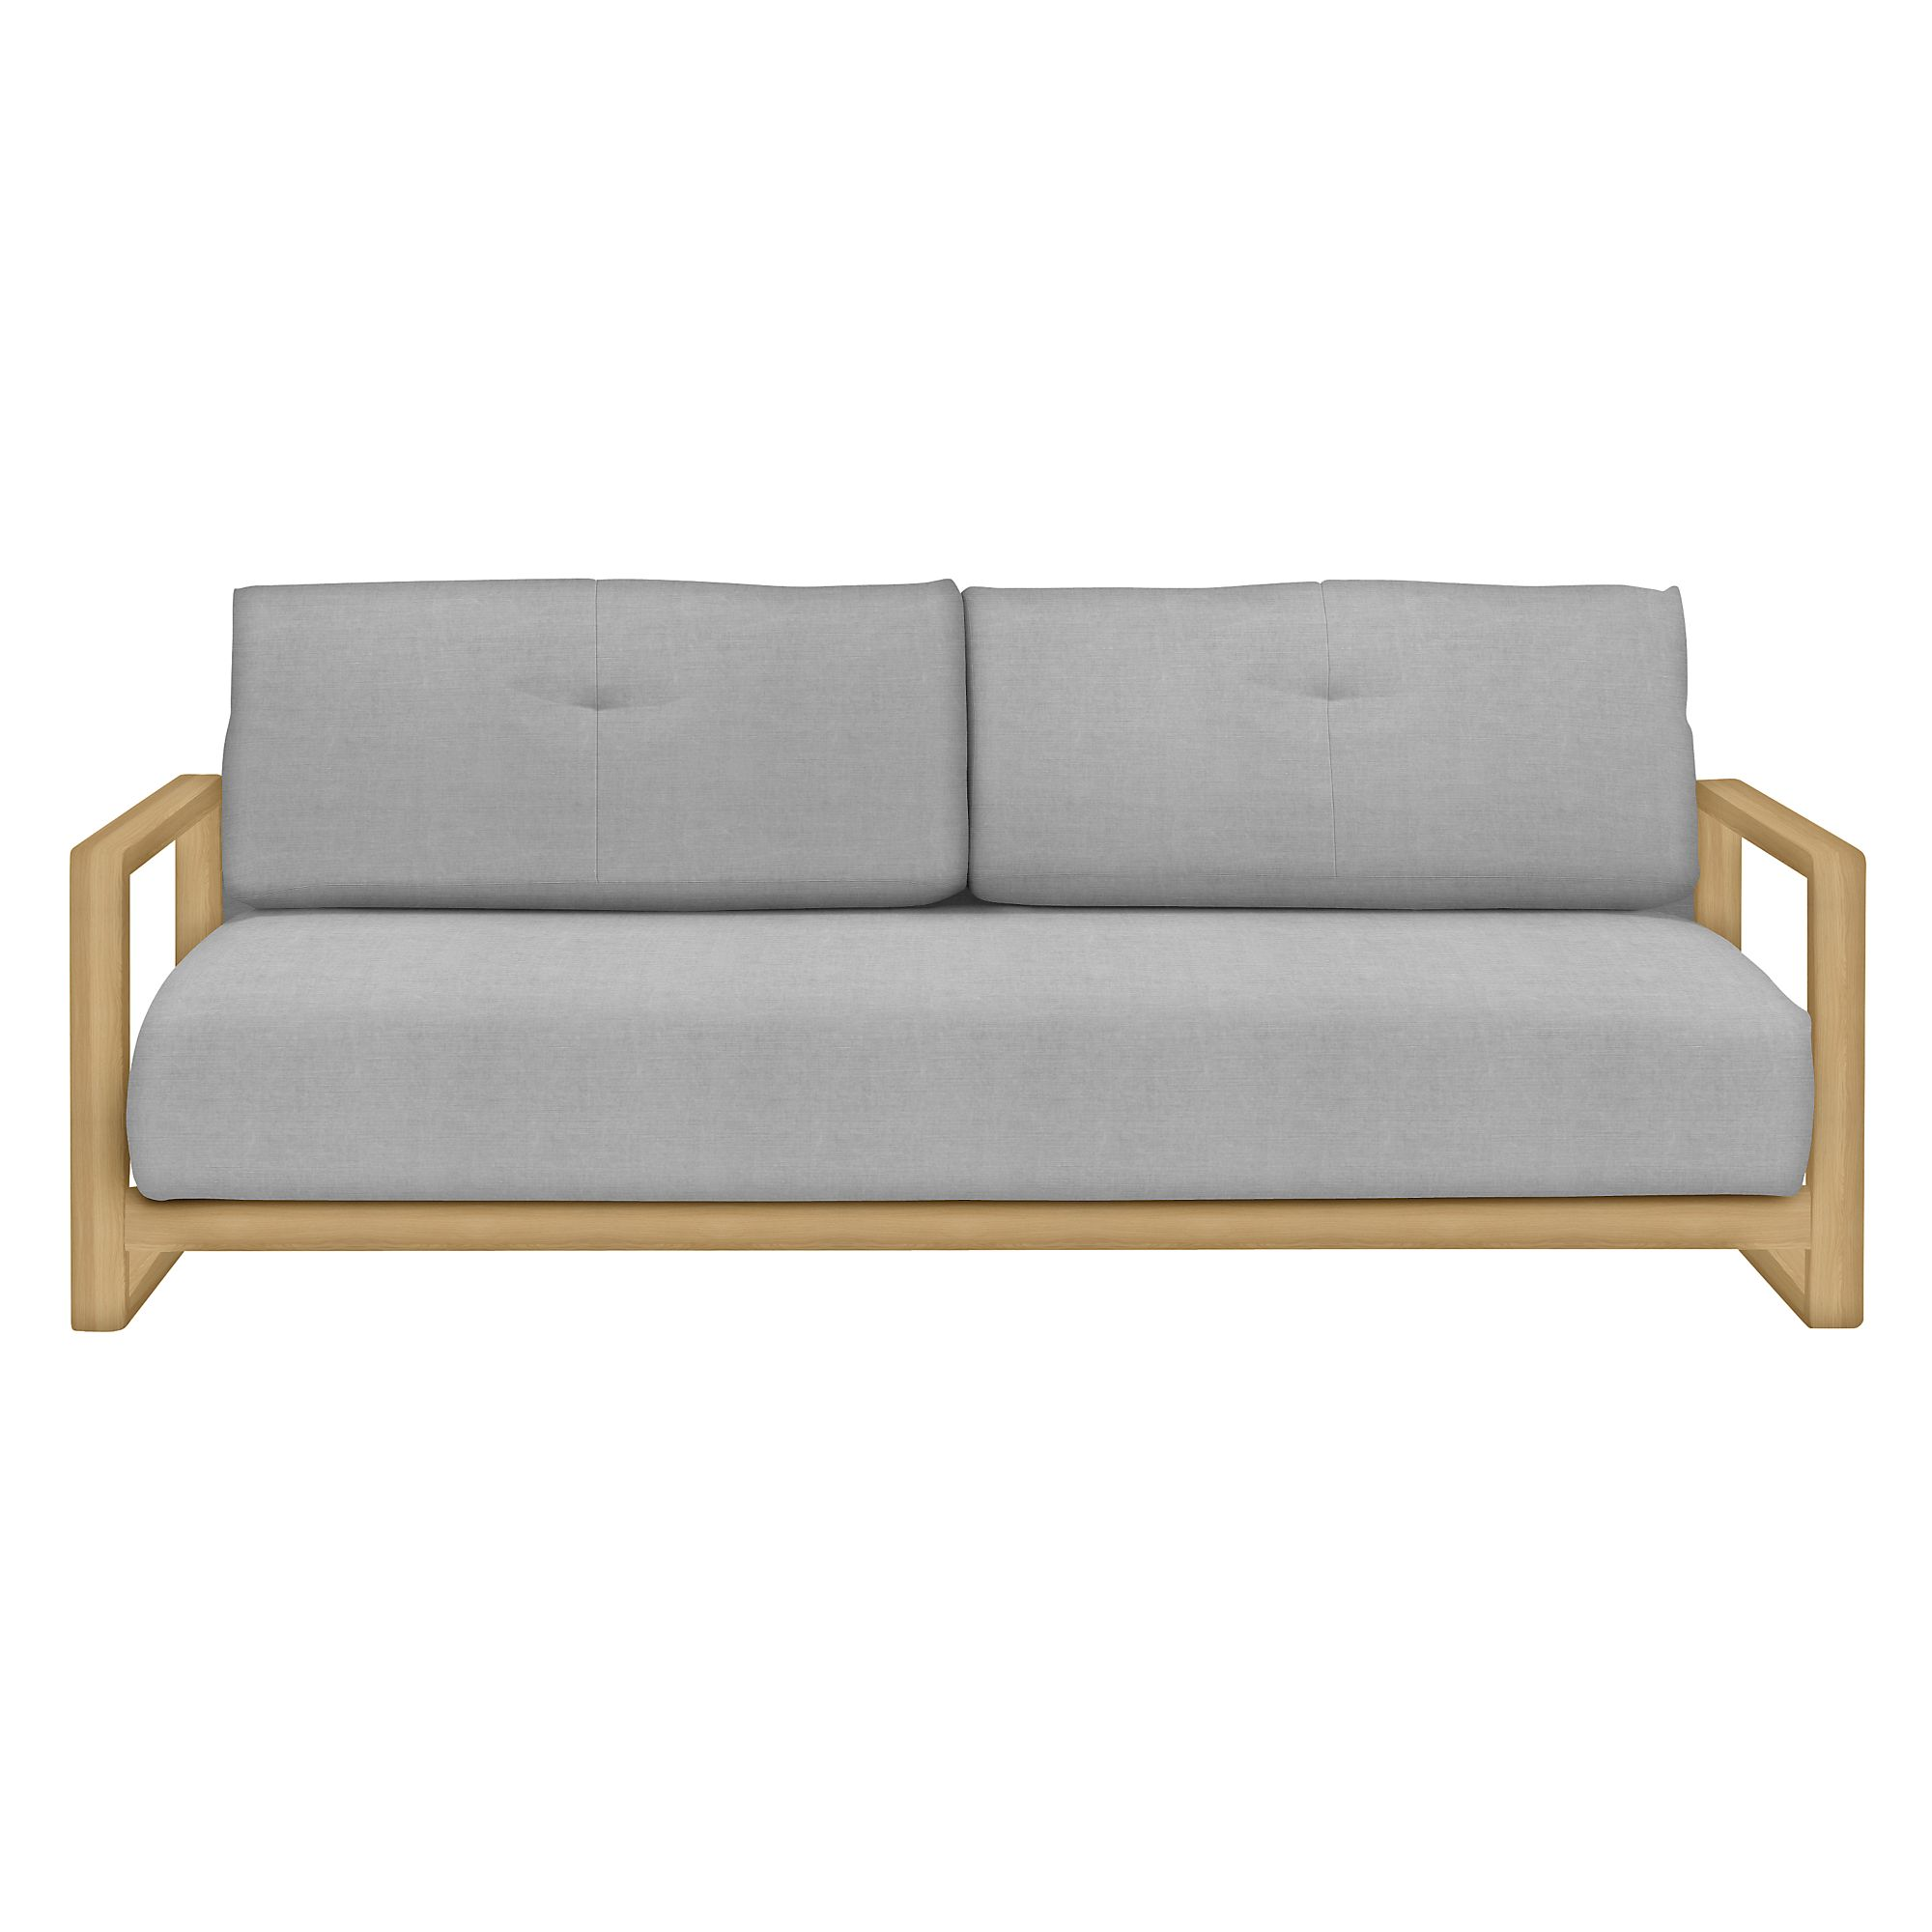 John Lewis Mercer Sofa Bed